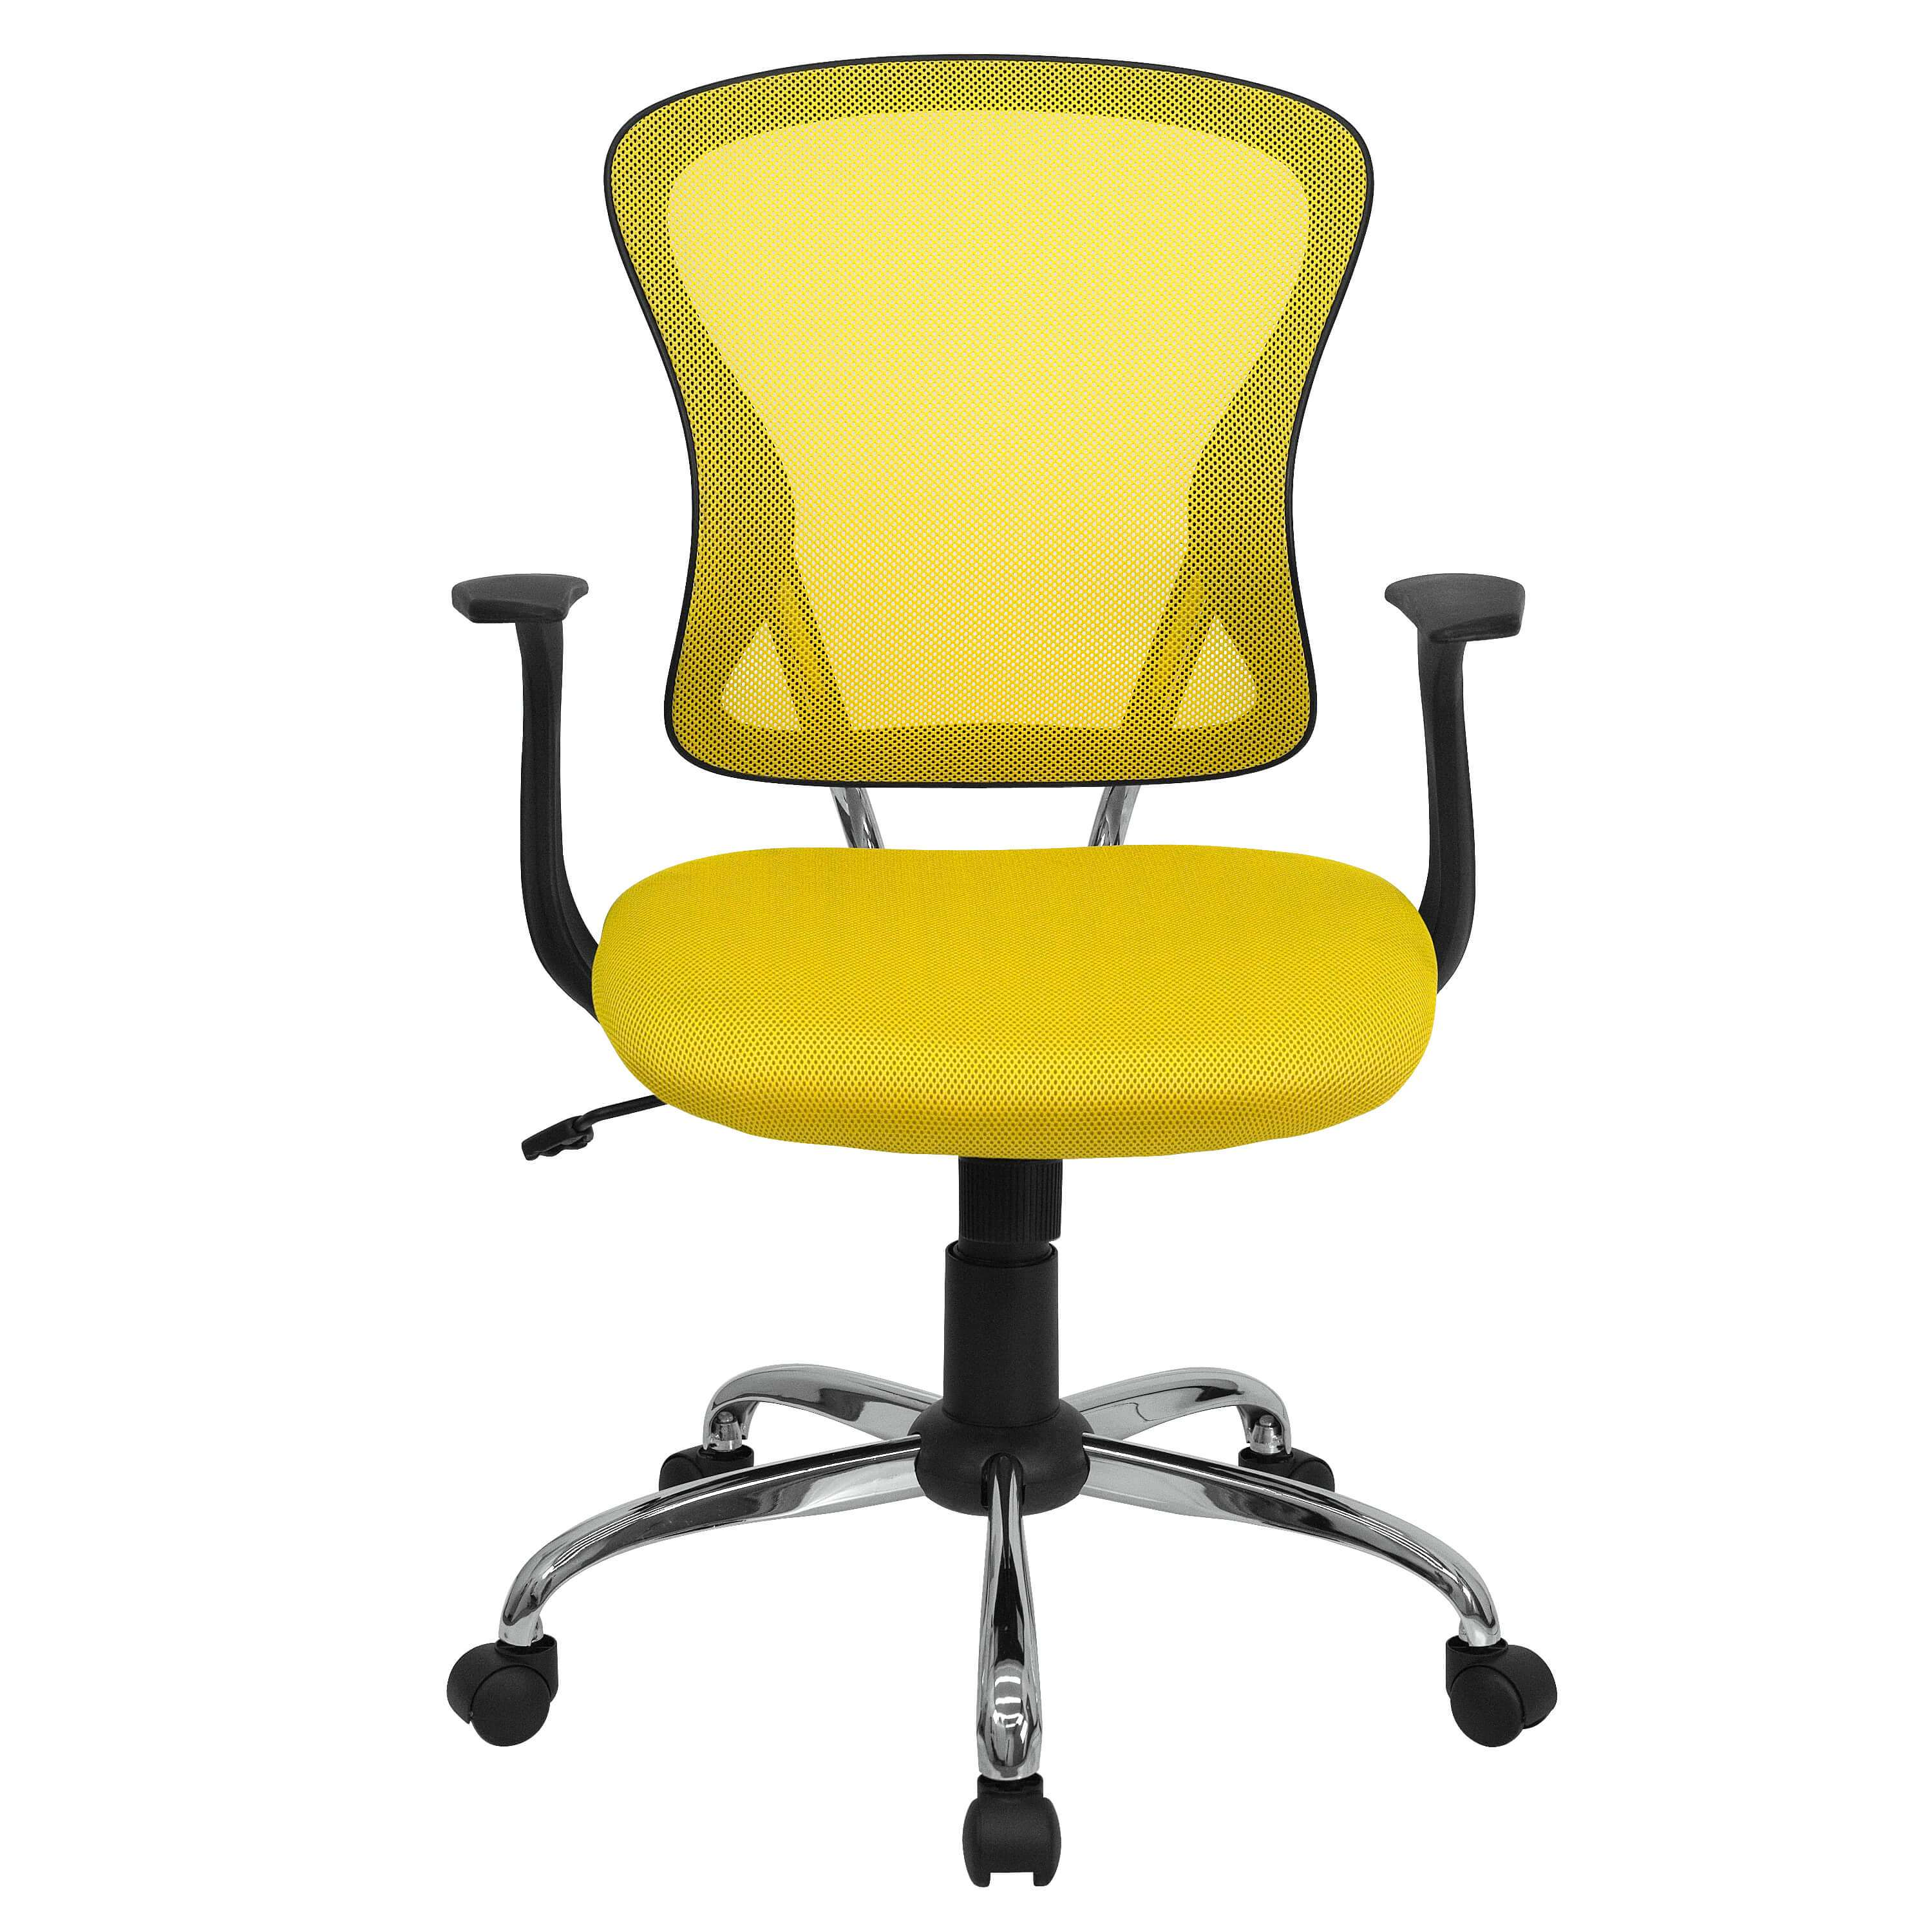 Colorful desk chairs CUB H 8369F YEL GG FLA